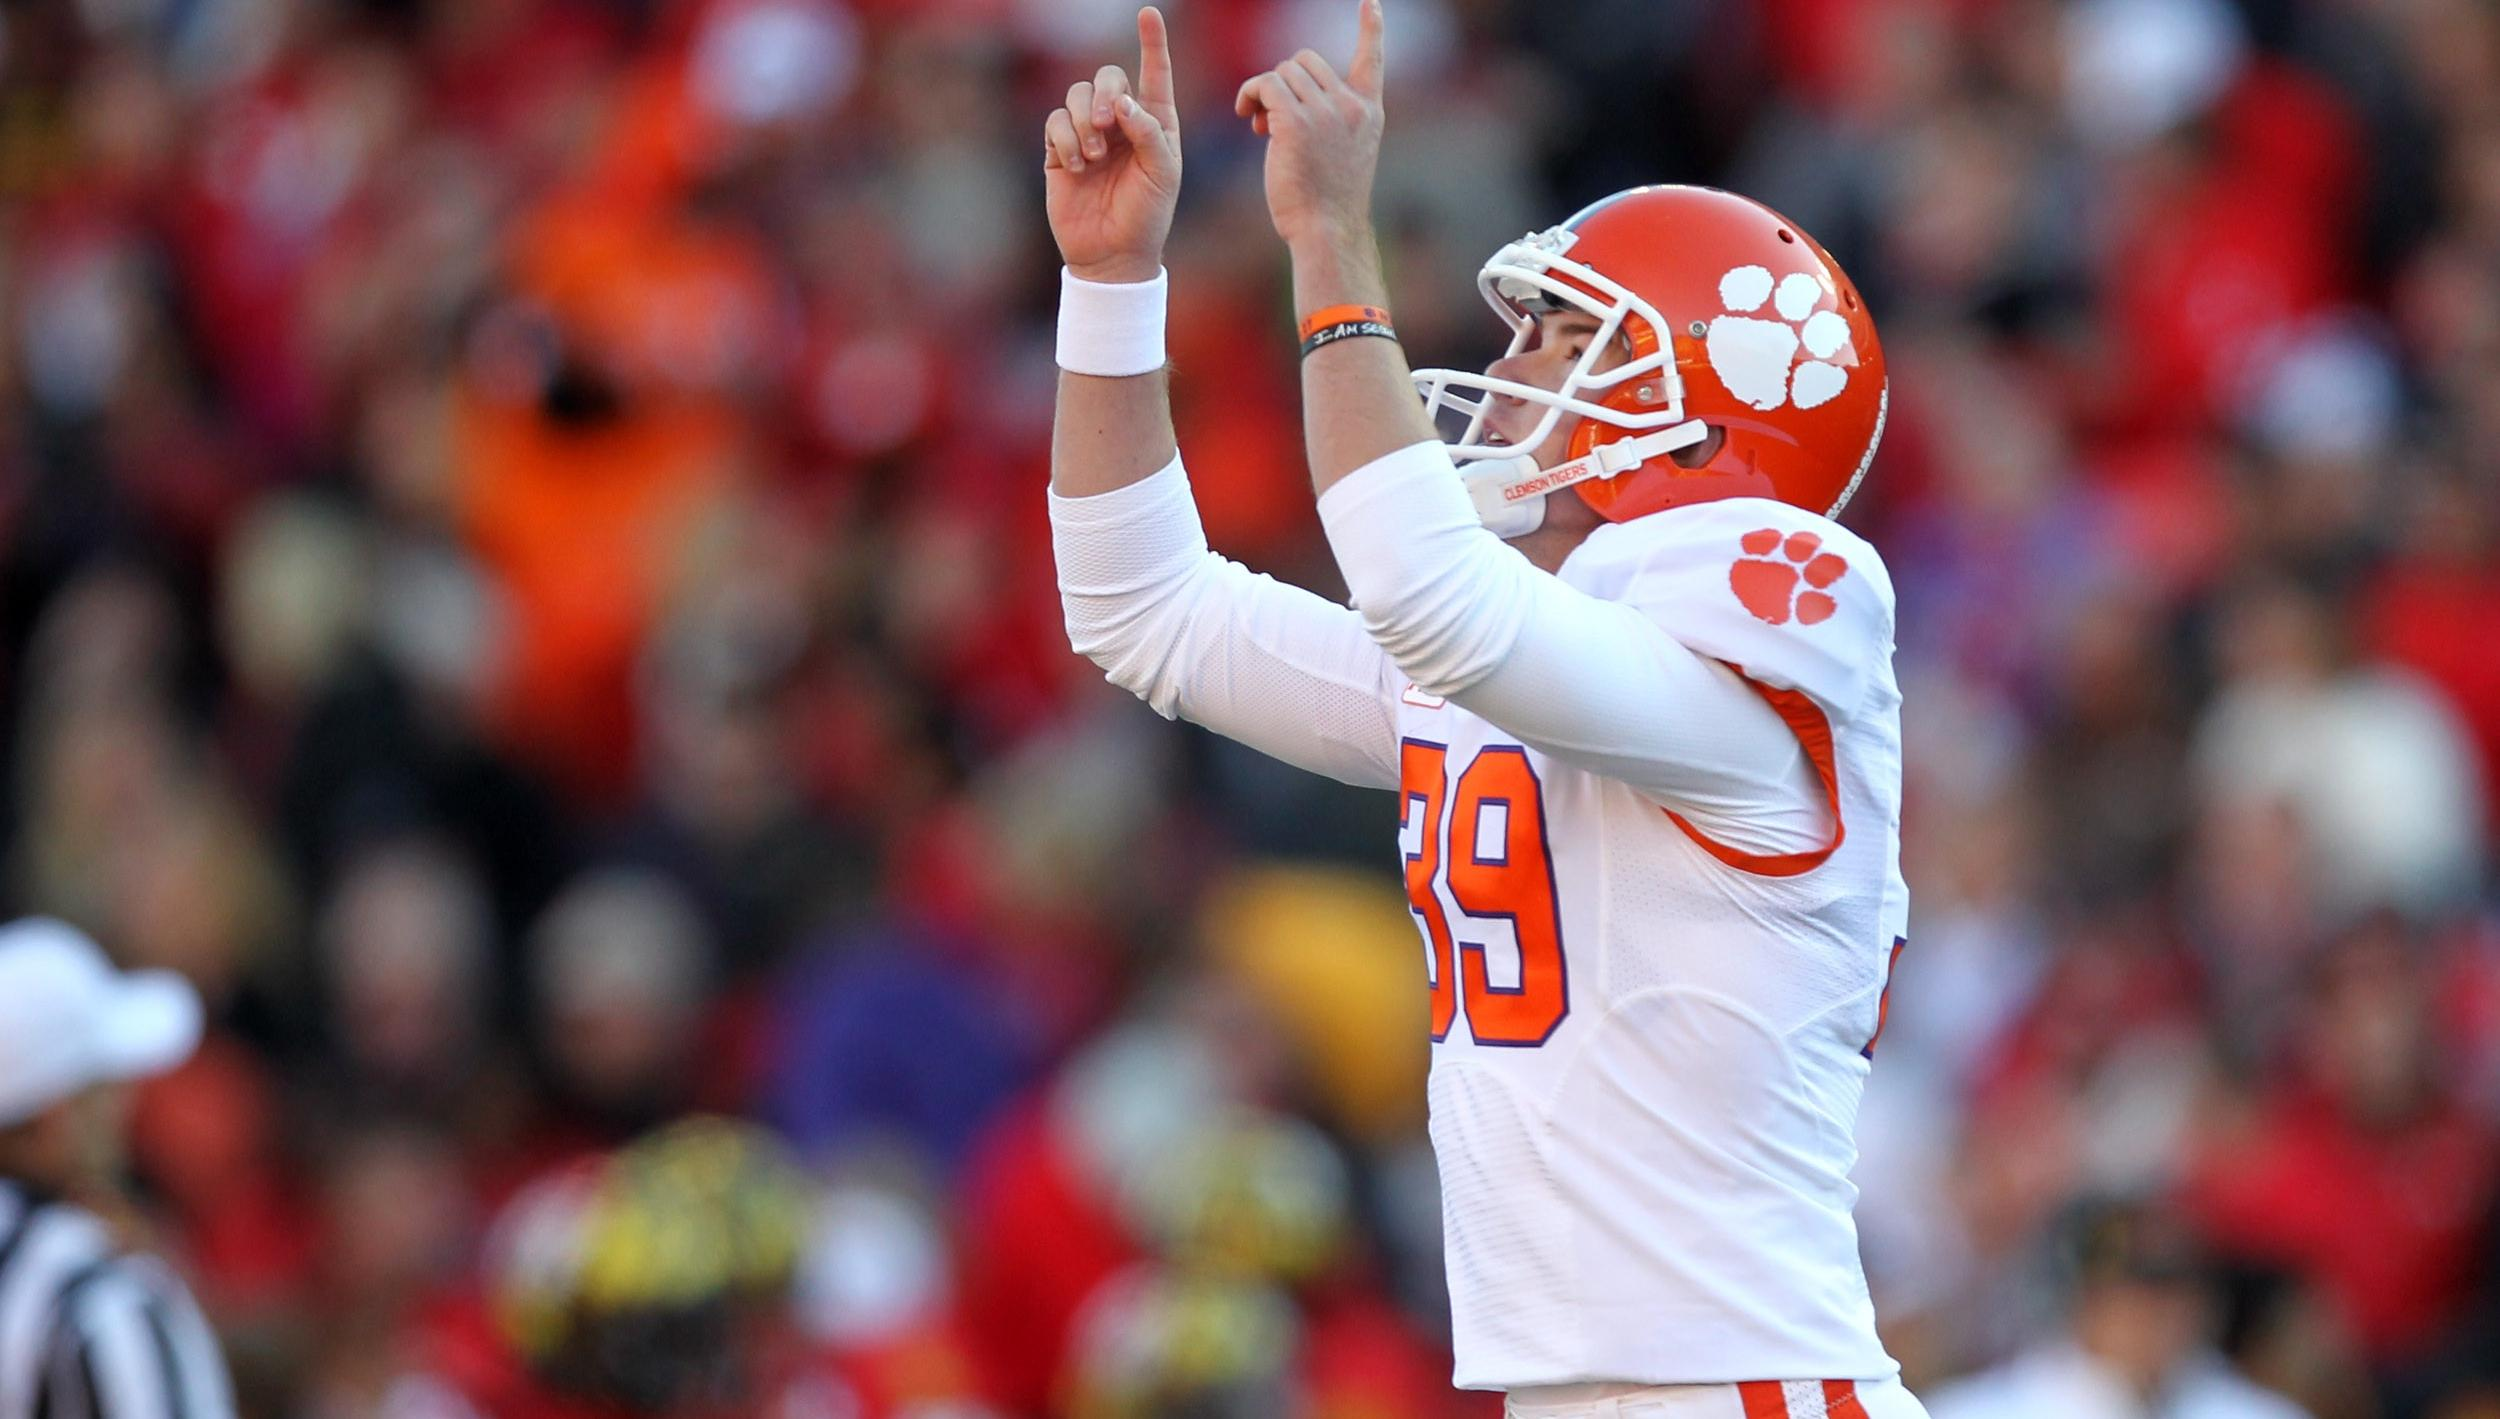 Clemson Football Video Report: Tiger Talk with Chandler Catanzaro